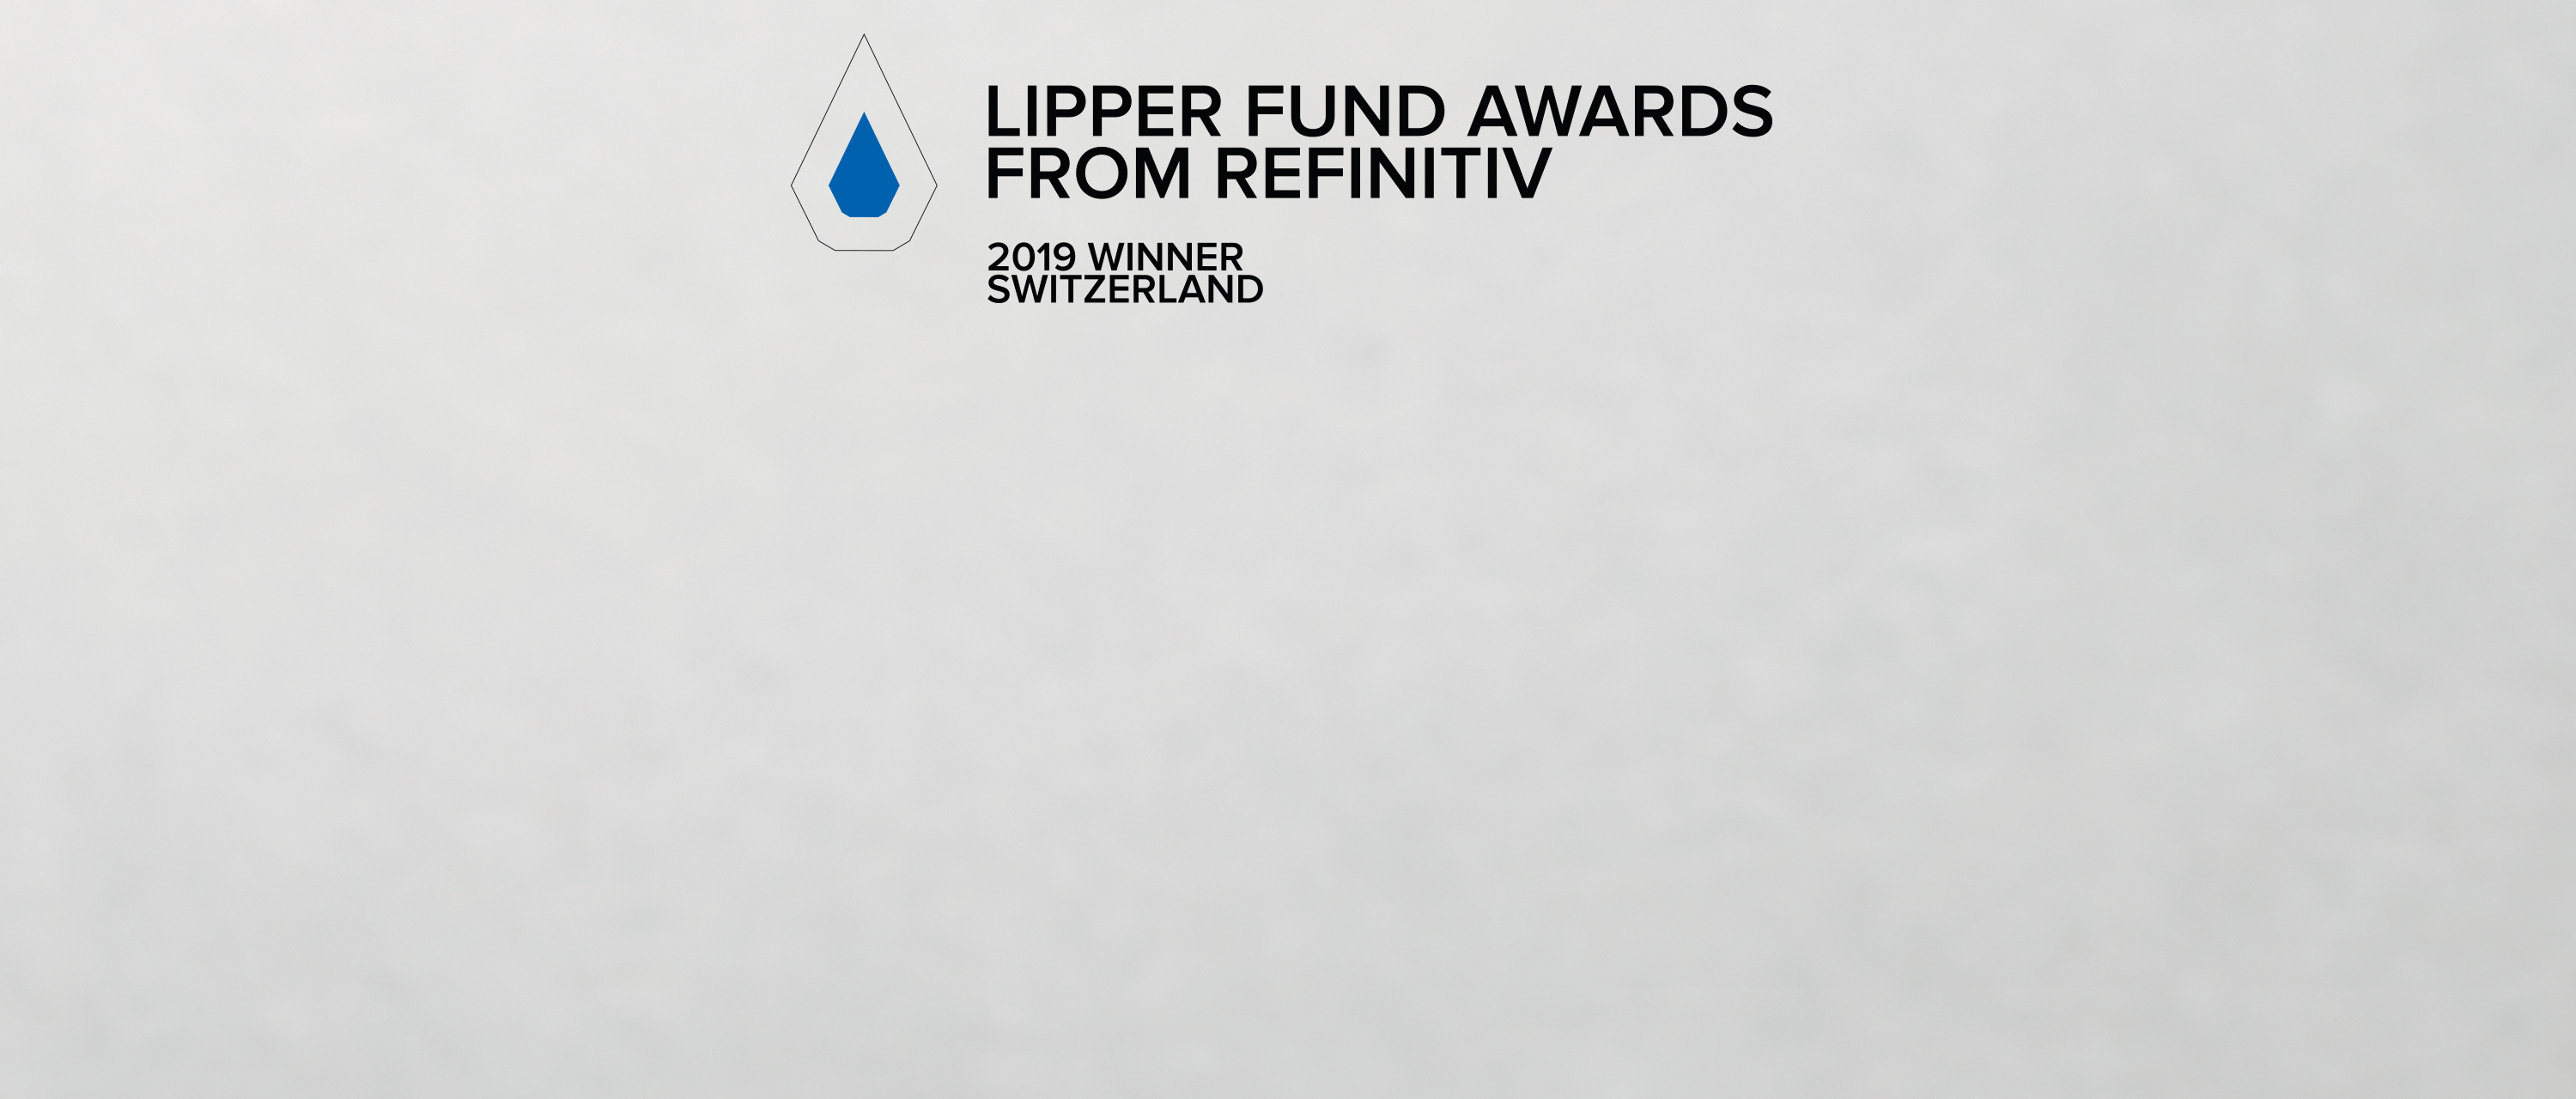 Lipper Award 2019